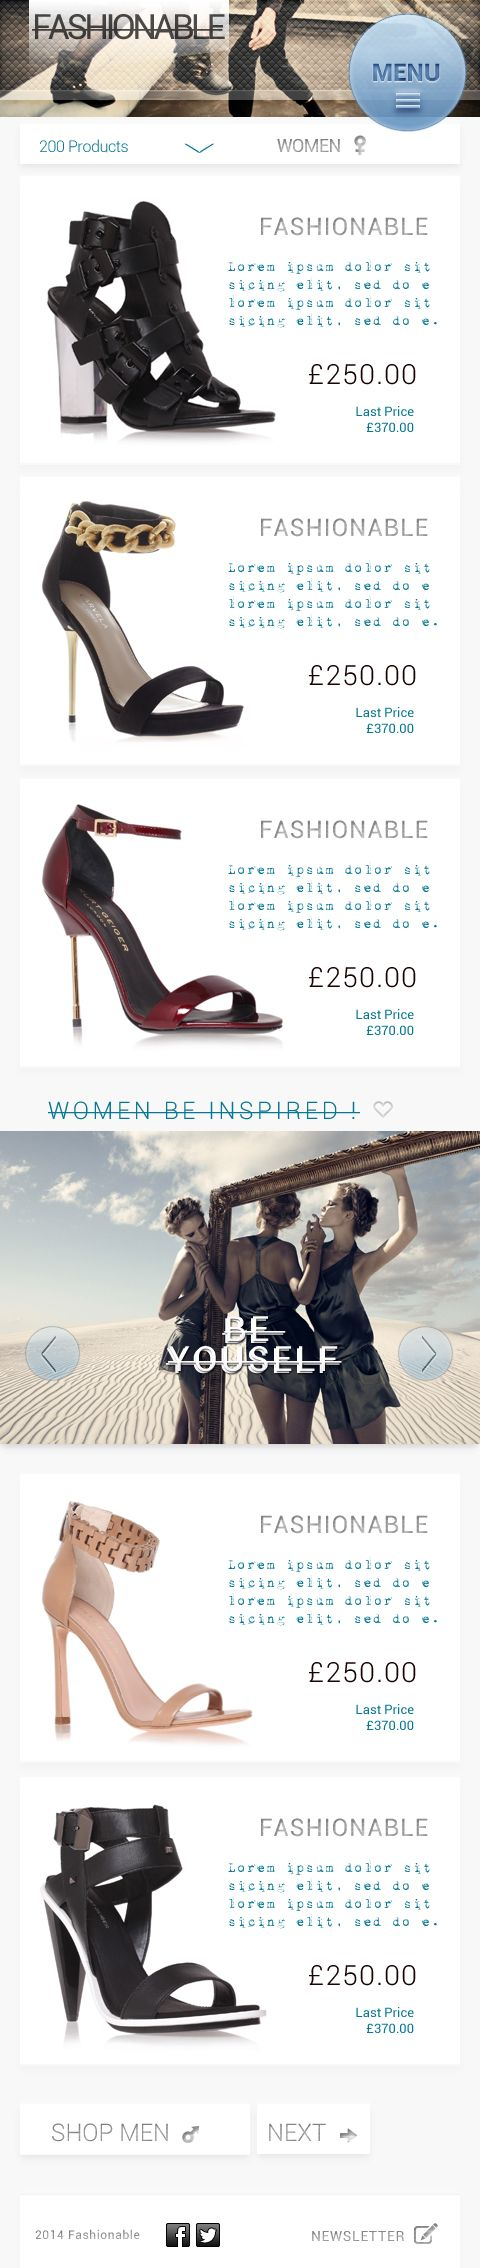 Fashionable Mobile Online Store